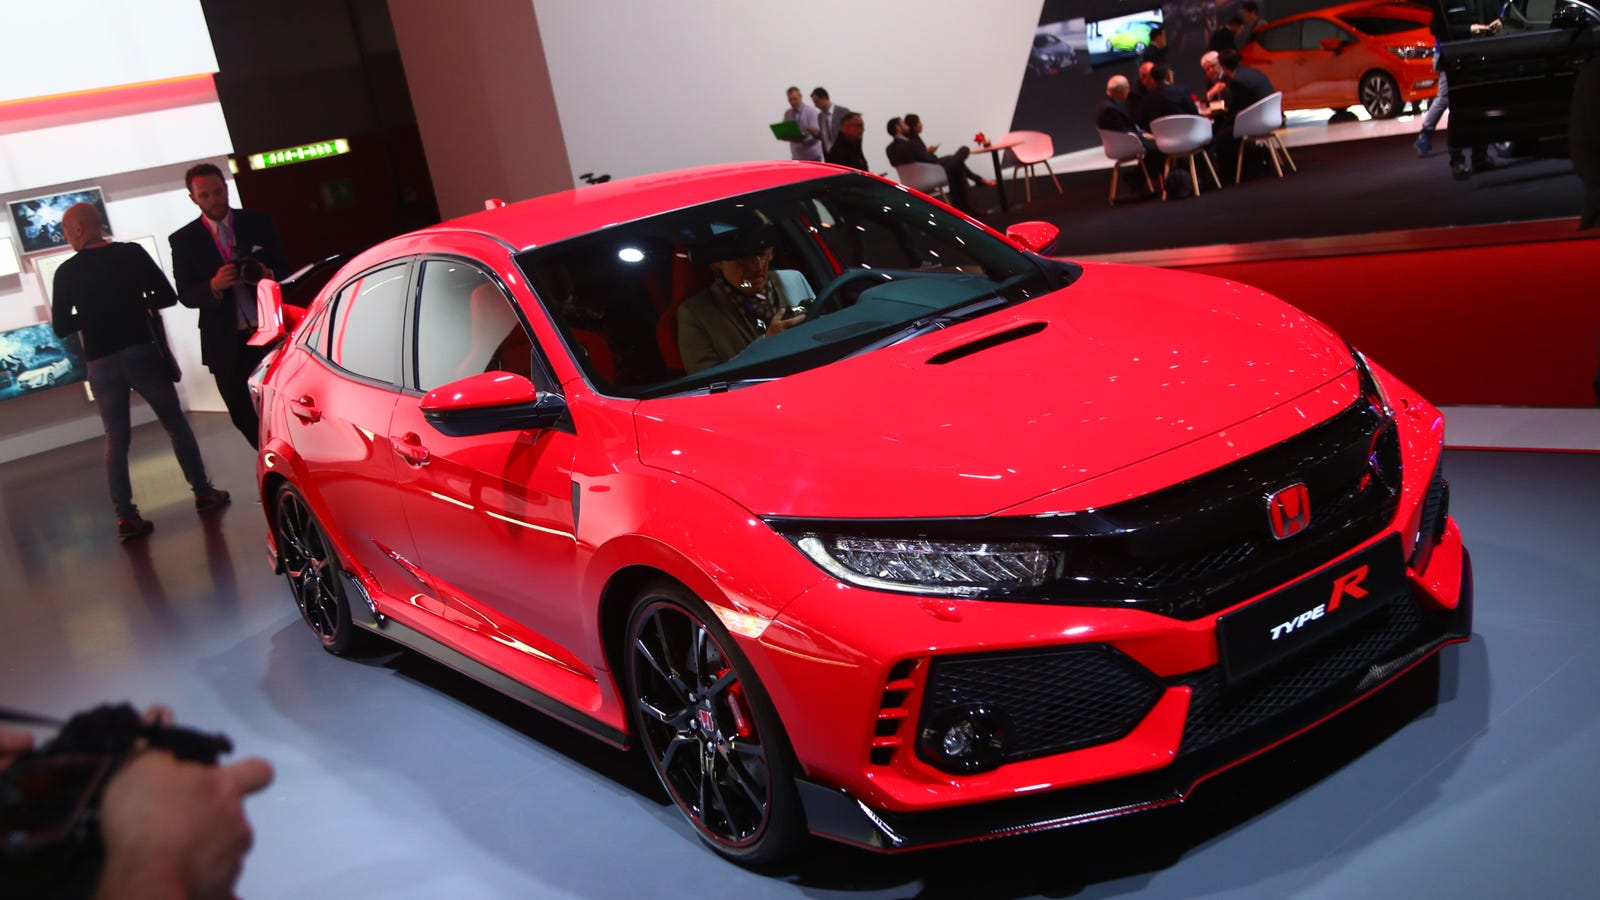 The 2018 Honda Civic Type R Is Ridiculous In All The Right Ways